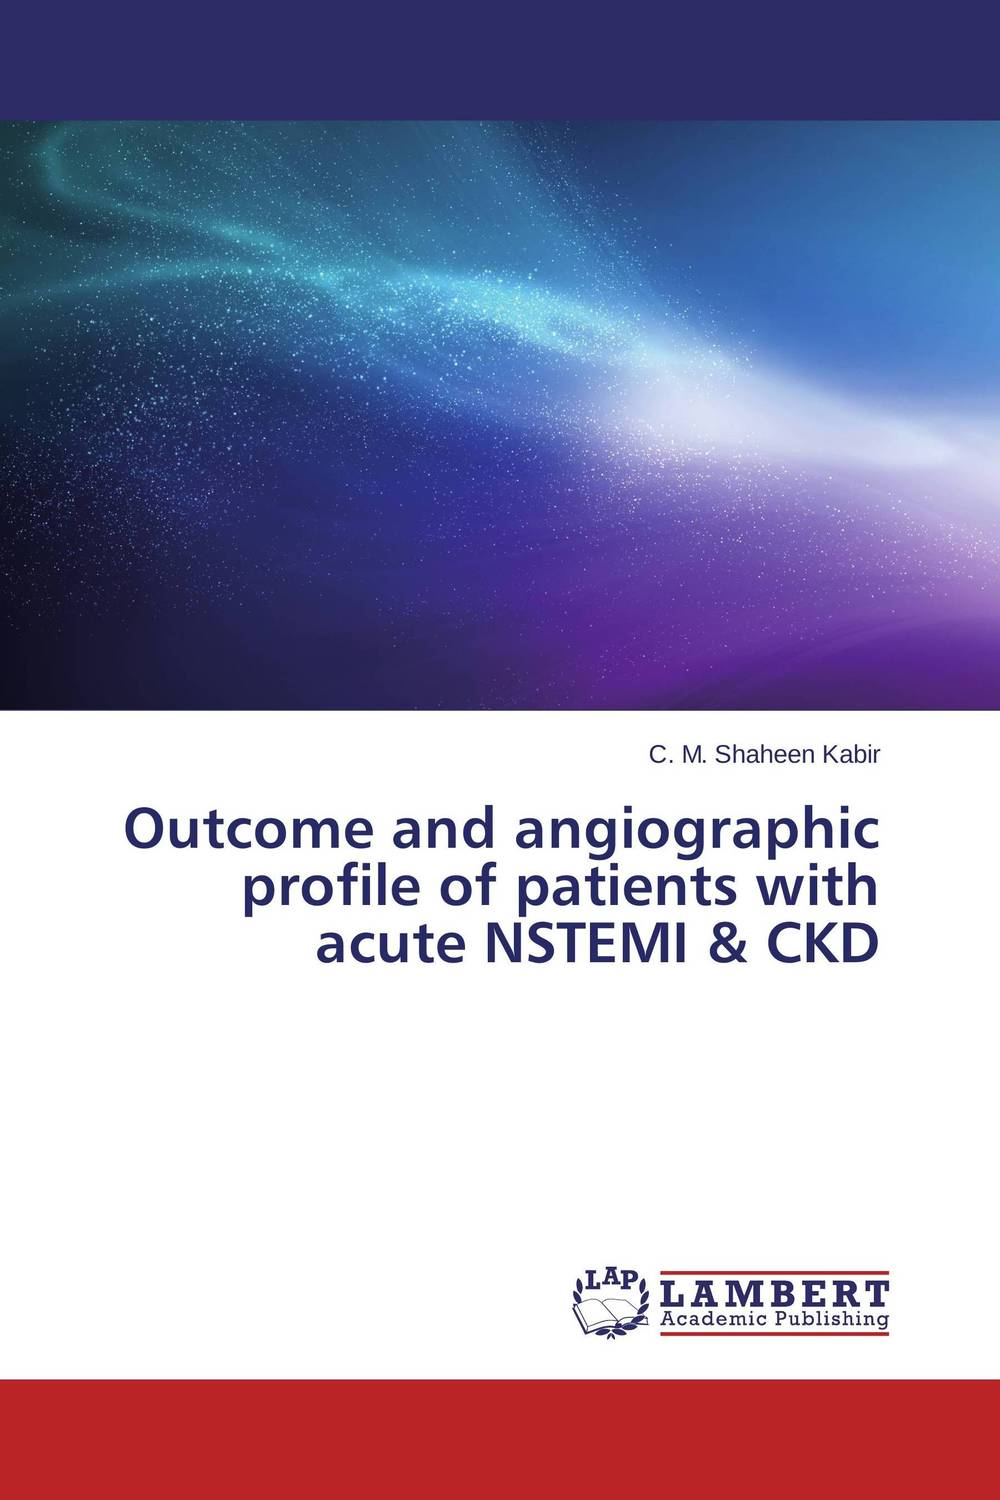 цены Outcome and angiographic profile of patients with acute NSTEMI & CKD